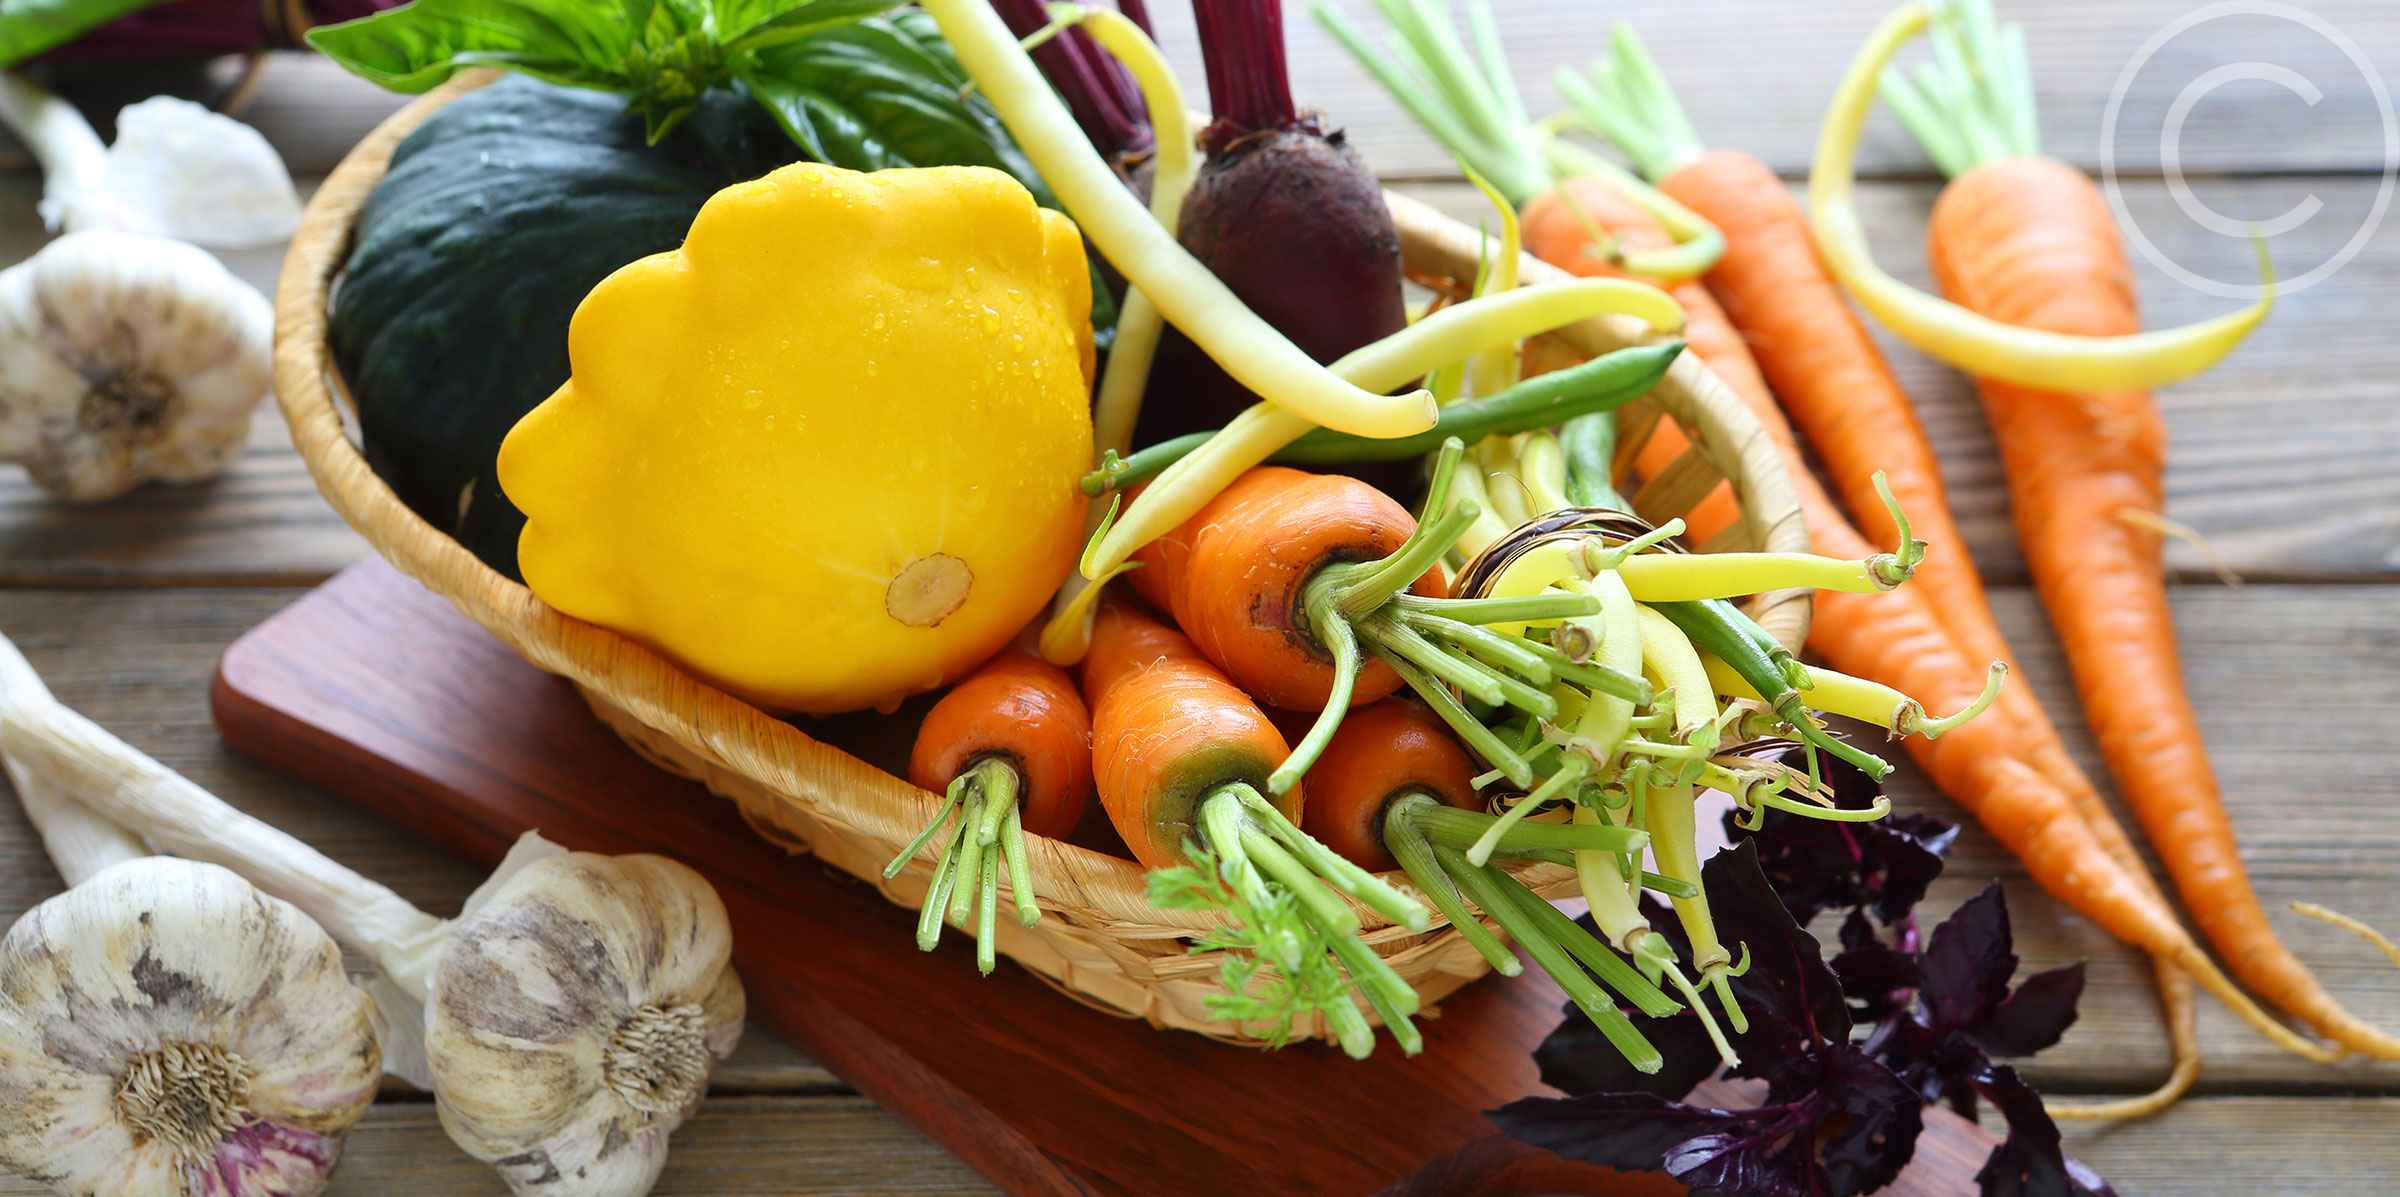 Organic foods that replace unhealthy snacks